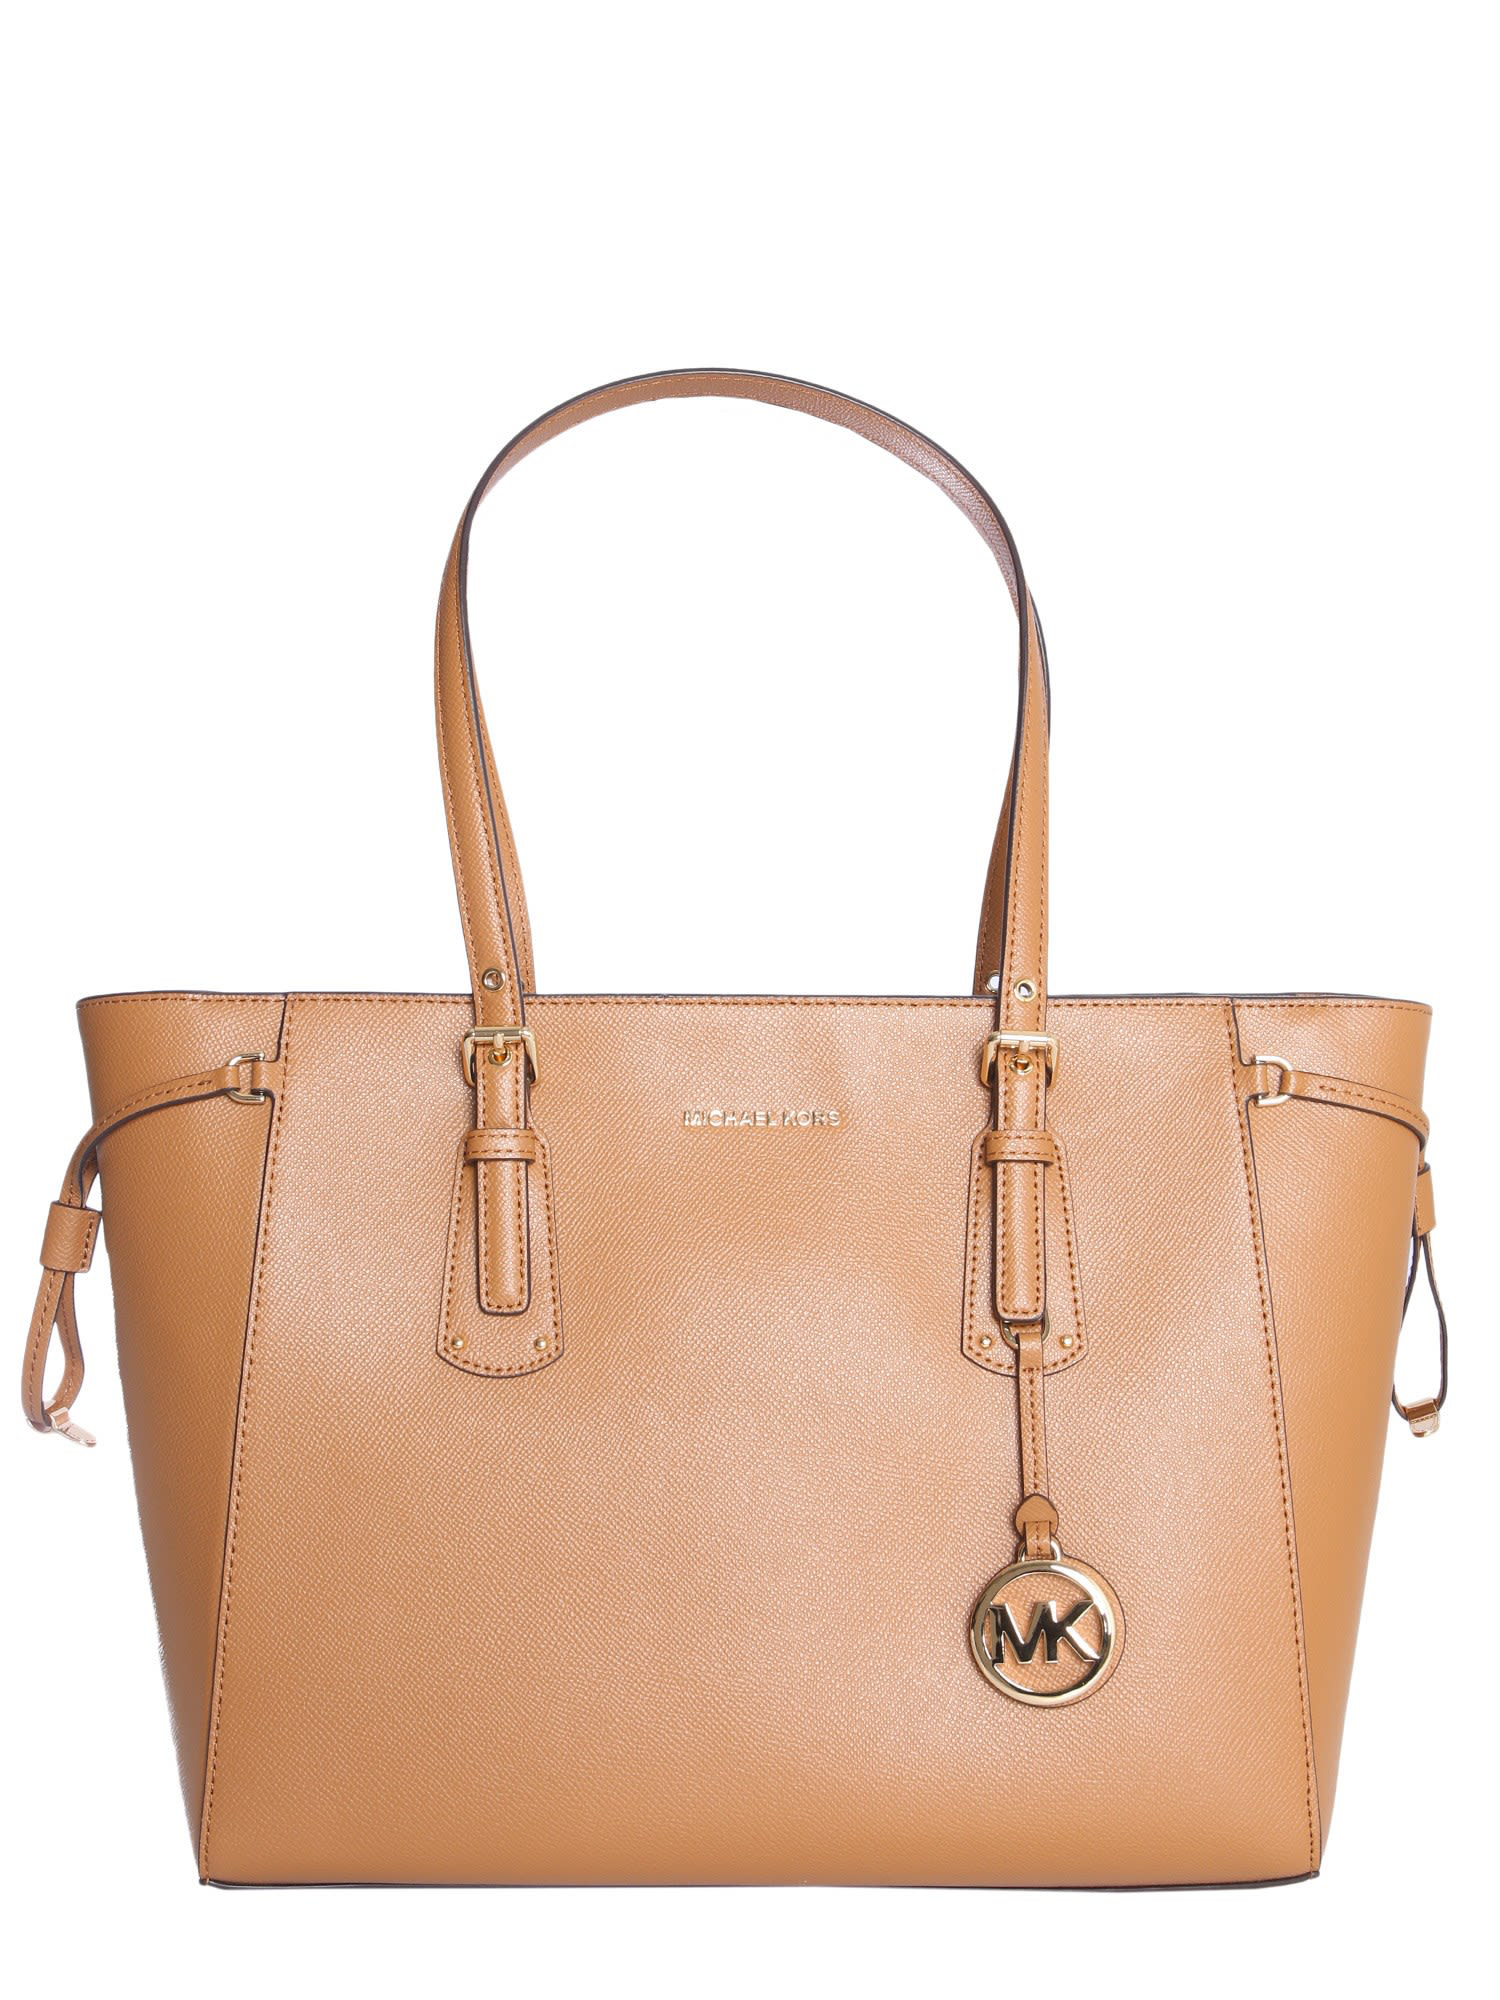 7dac82fdfbd6 Michael Michael Kors Voyager Medium Tote Bag In Marrone